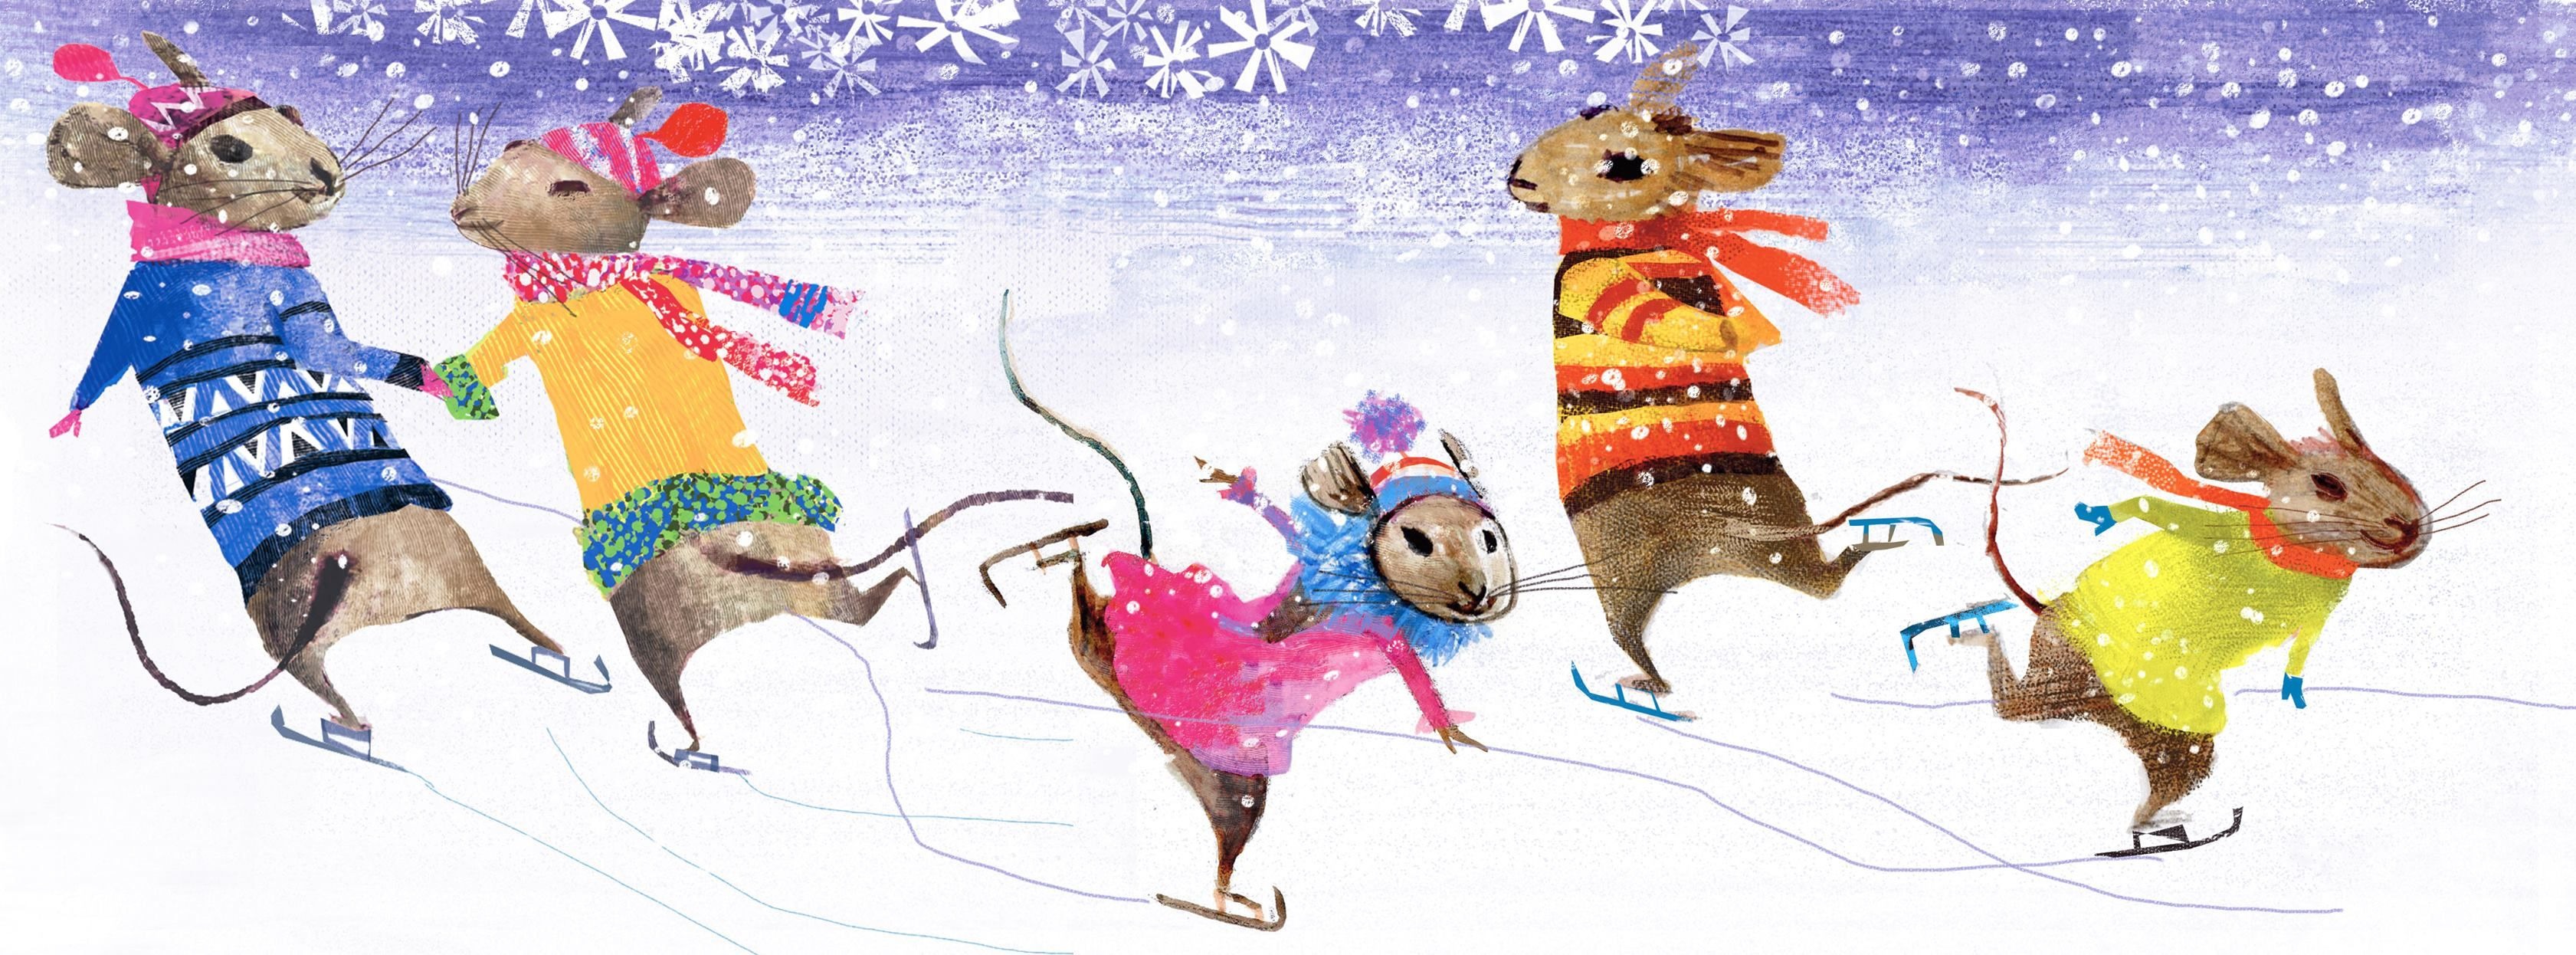 Mice skating   Gifts for pet lovers, Animal lover, Ice skating